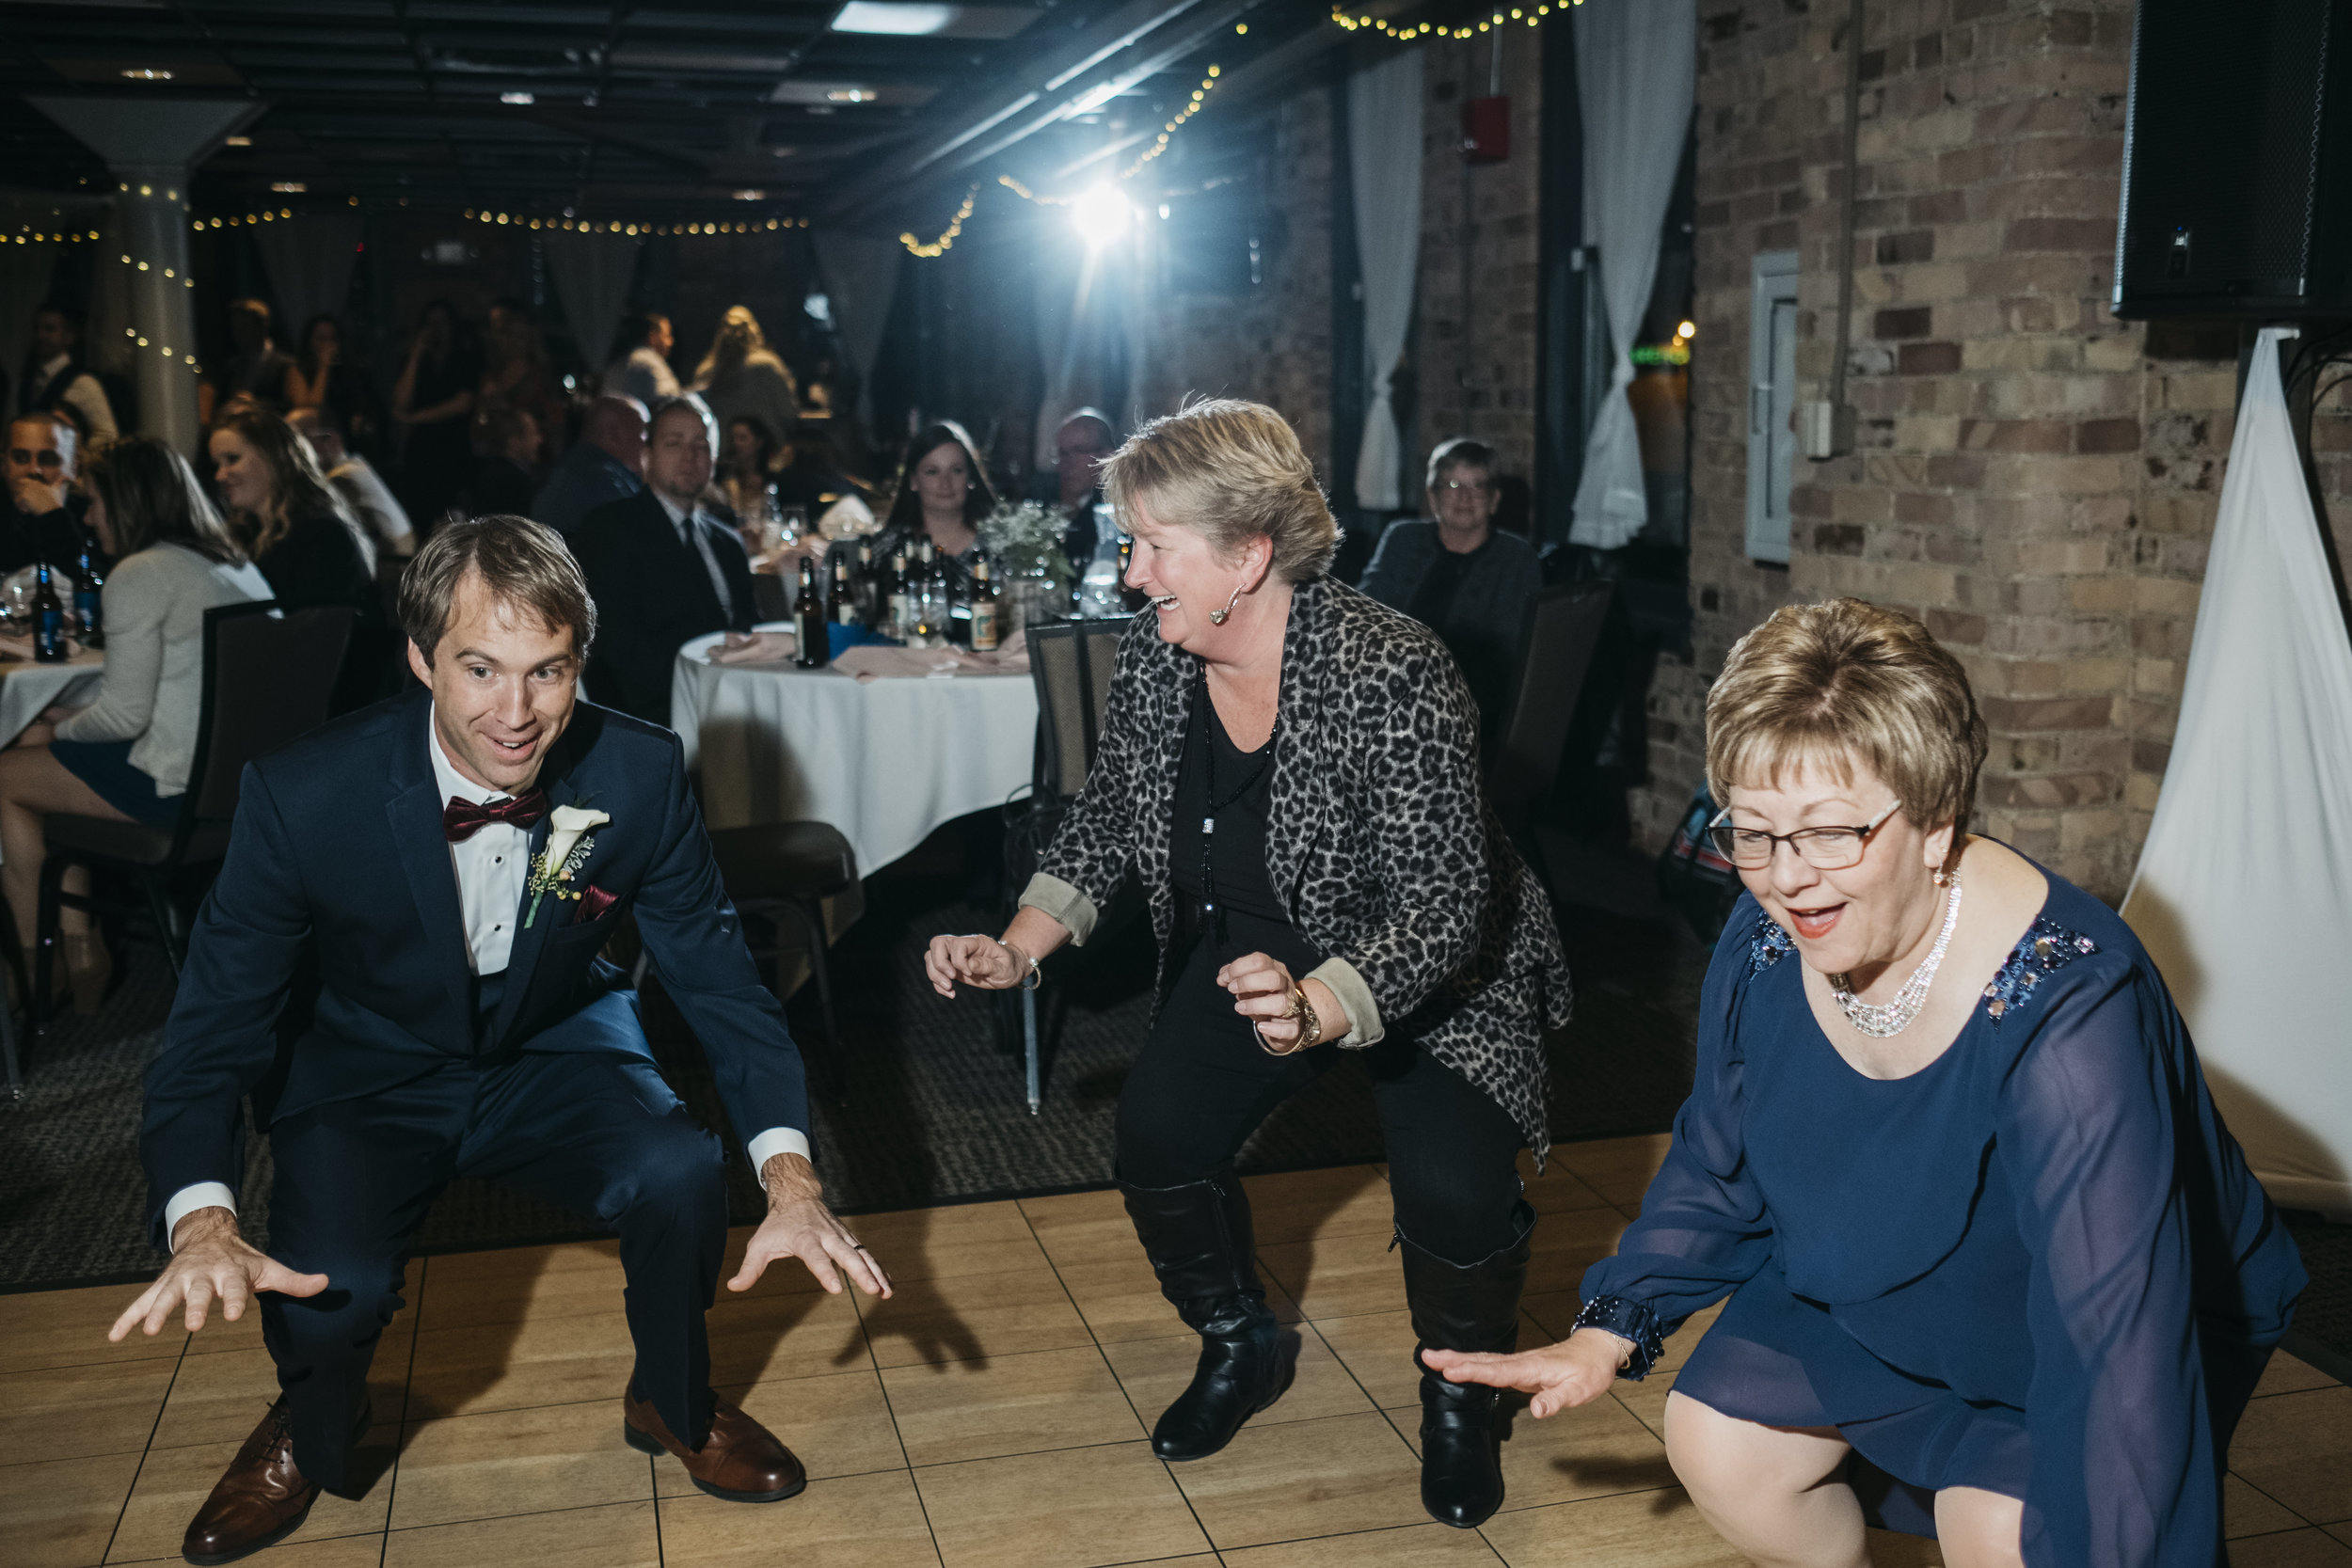 Guests and Groom Dance to Music on Dancefloor at Reception in Toledo Ohio with Wedding Photographers